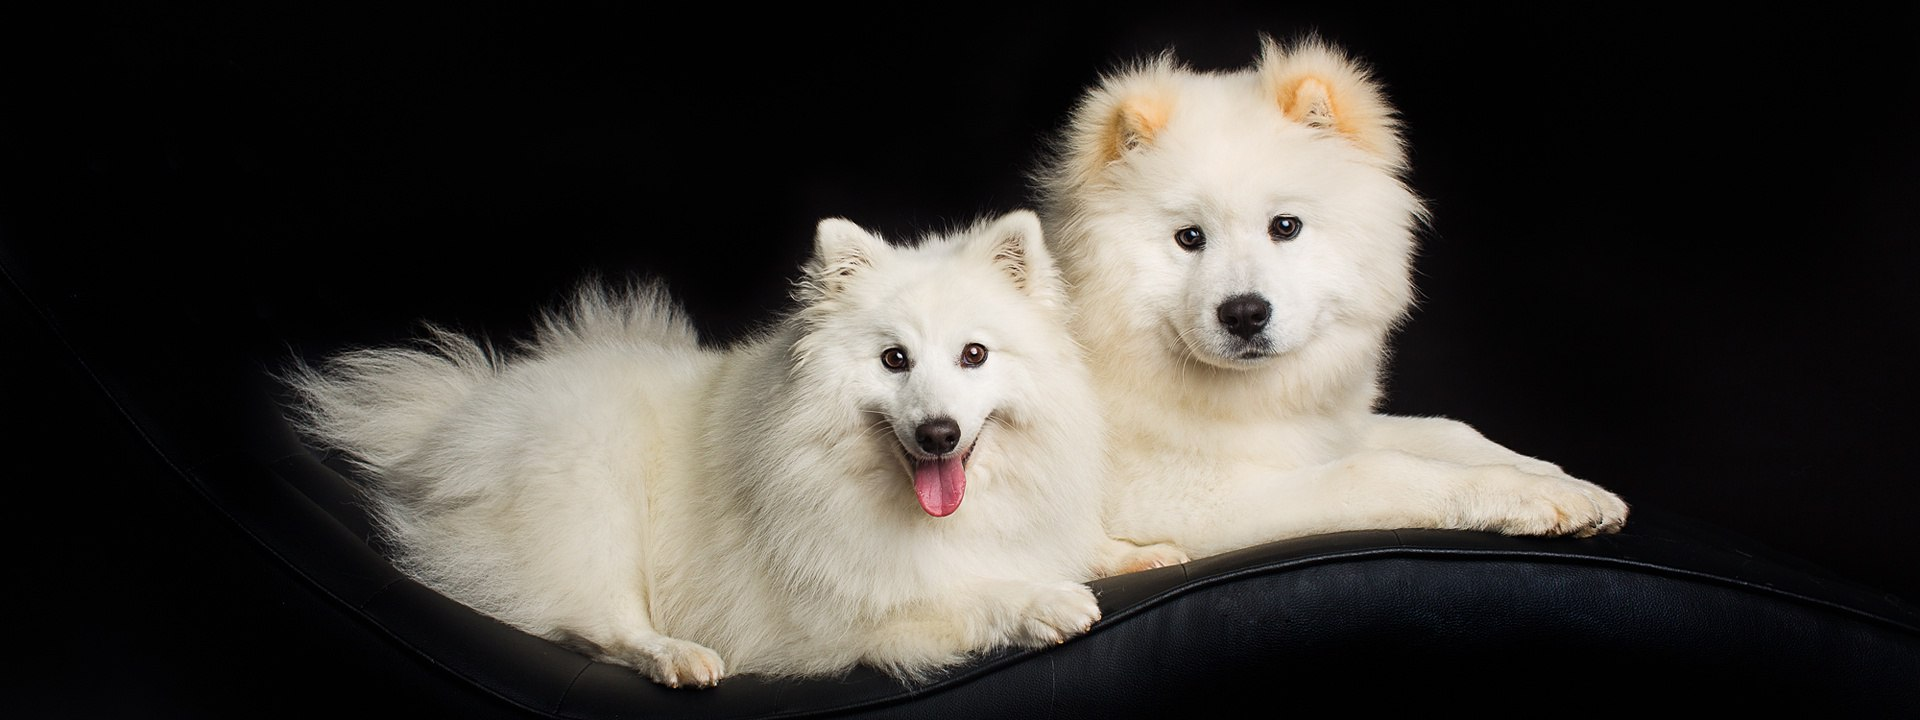 Japanese Spitz and Samoyed x Chow Chow photographed on black background in the Puppy Tales Photography studio